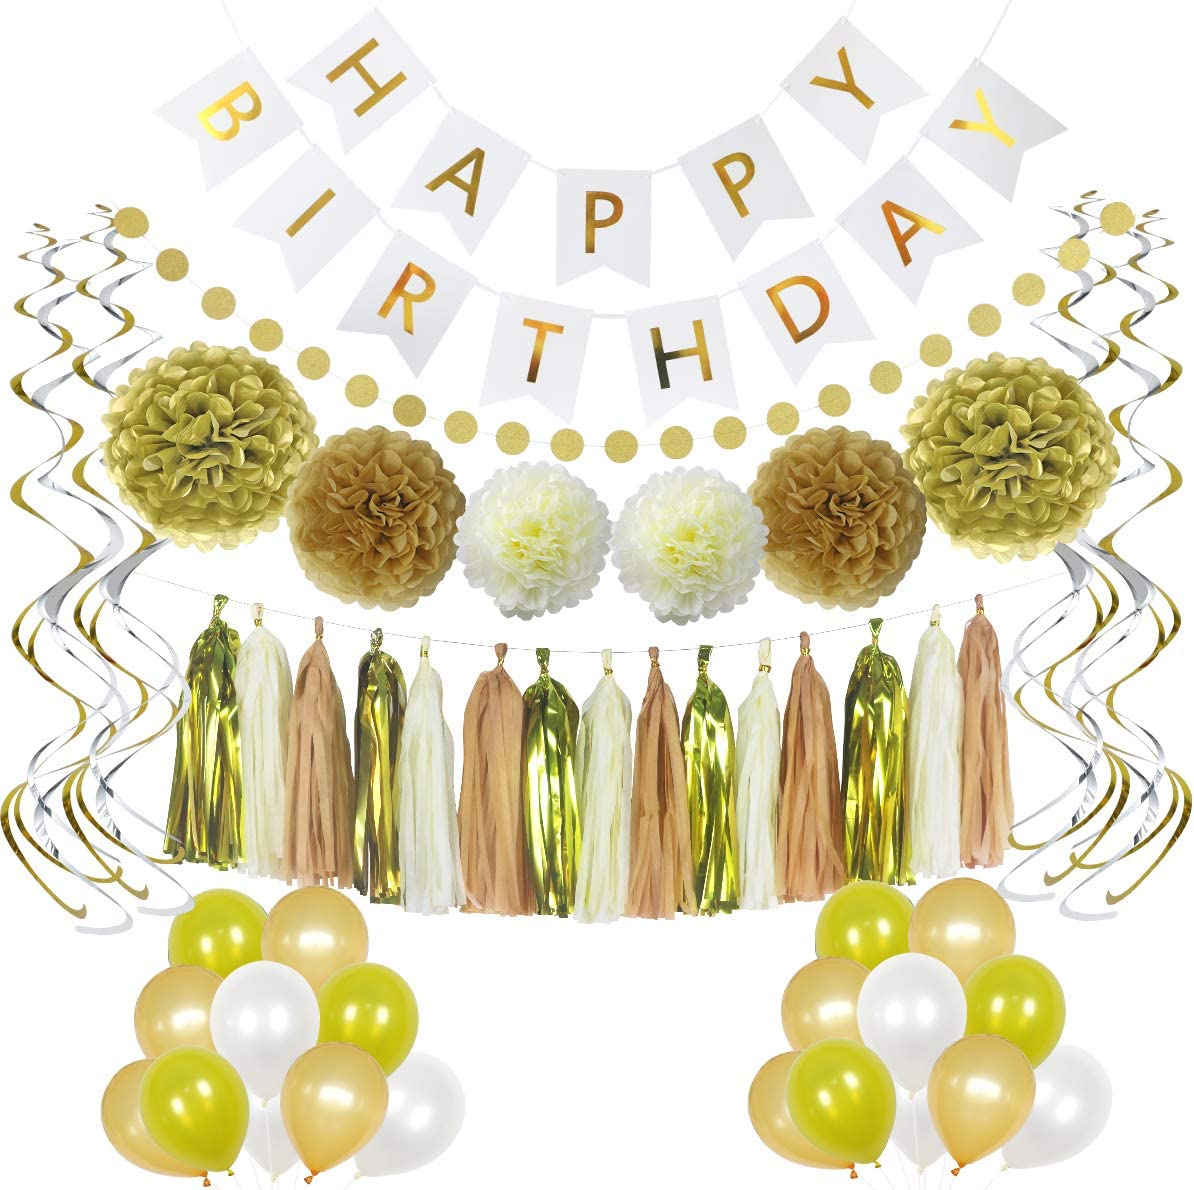 LITAUS Birthday Decorations Chic White Party Gold specialty shop Sale Special Price and Supplies